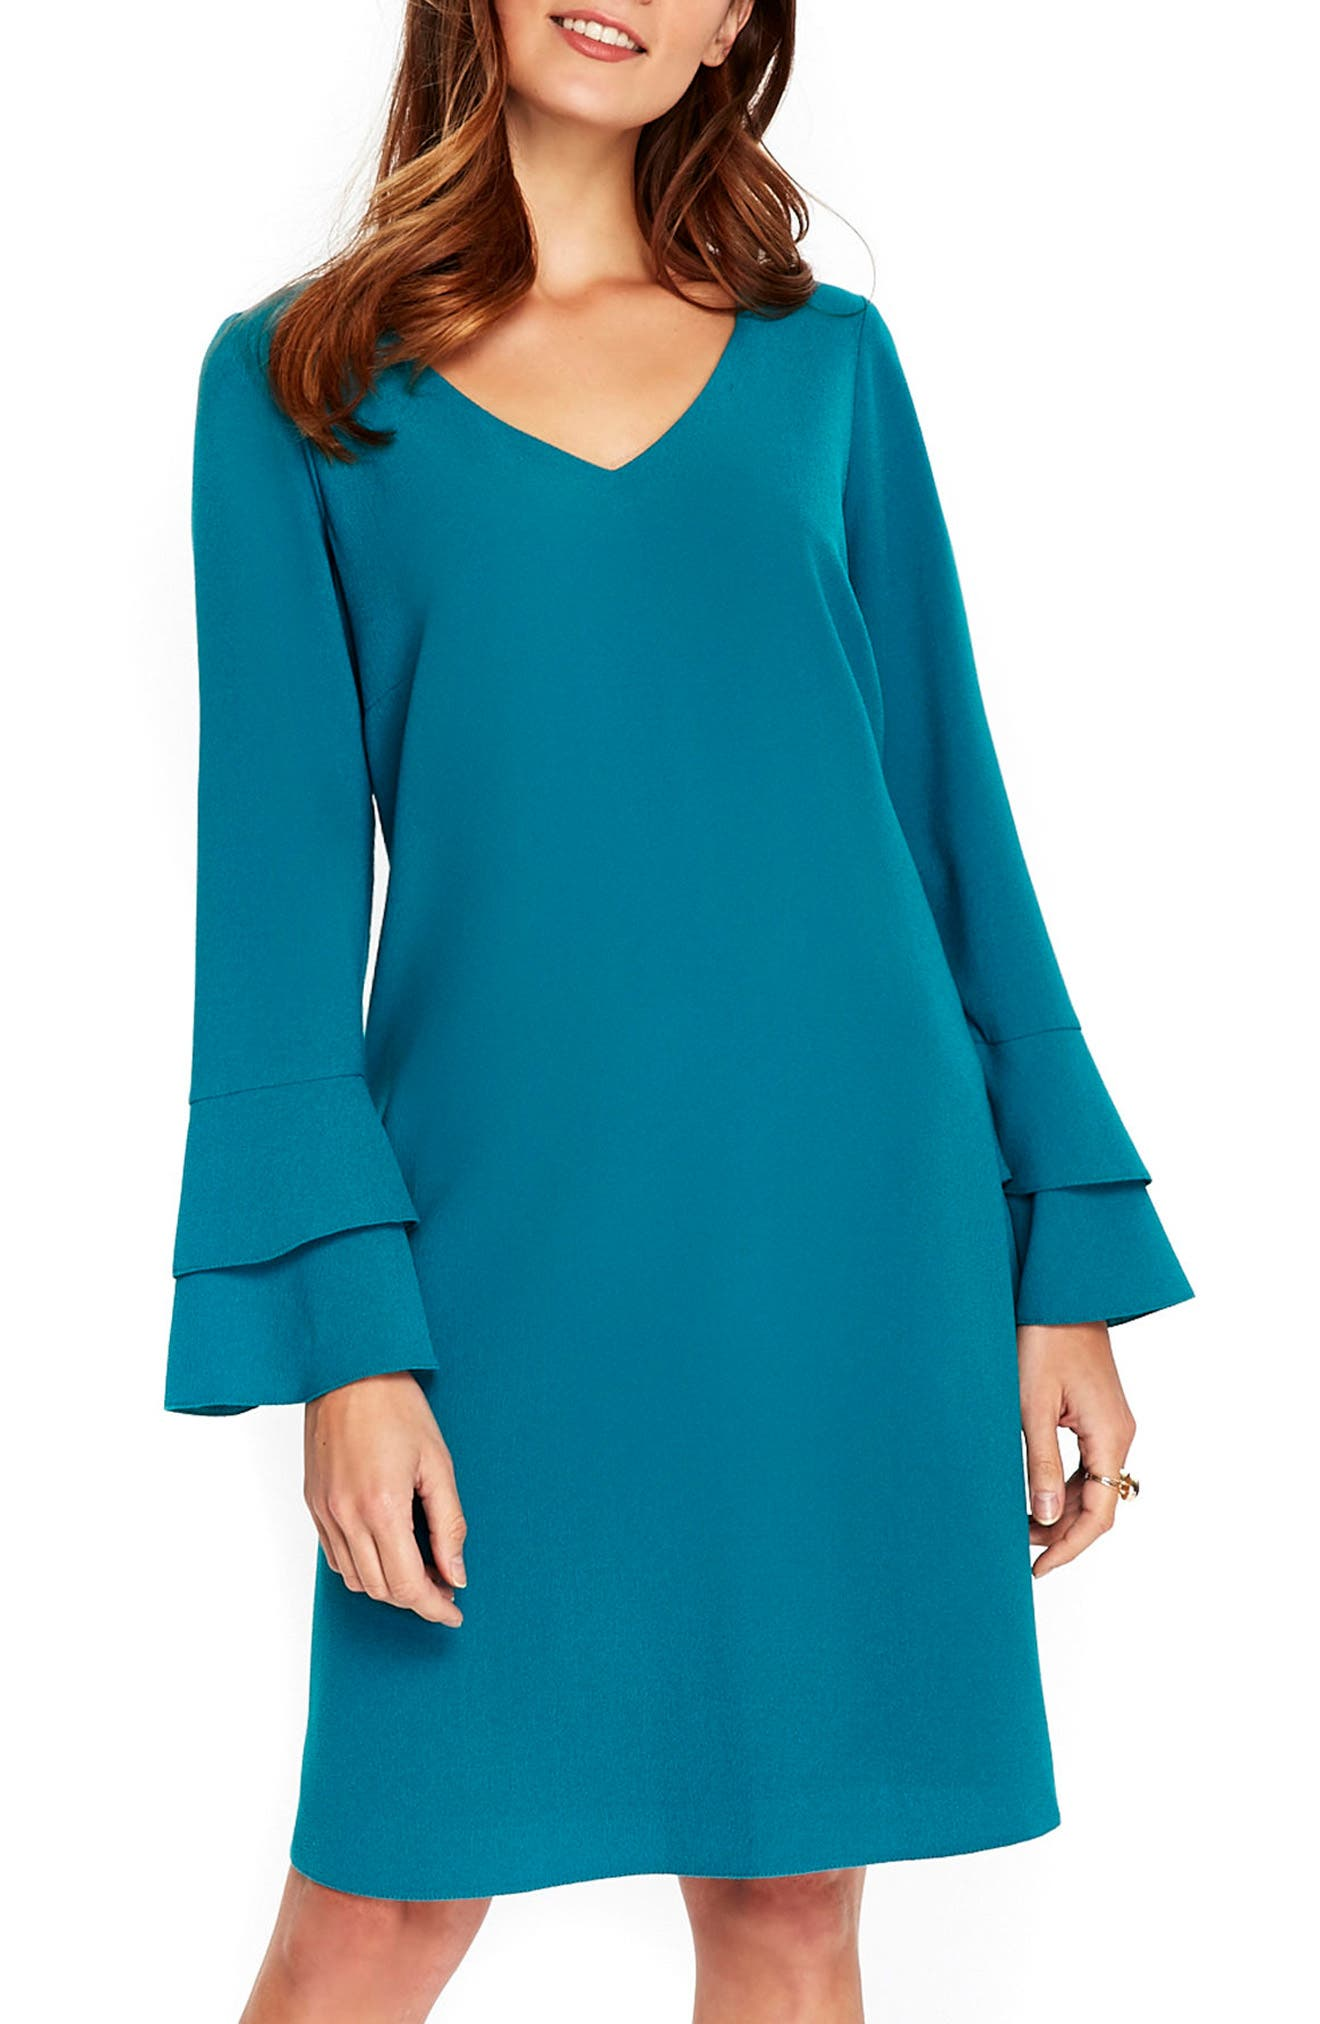 Bell Sleeve Shift Dress,                         Main,                         color, 440